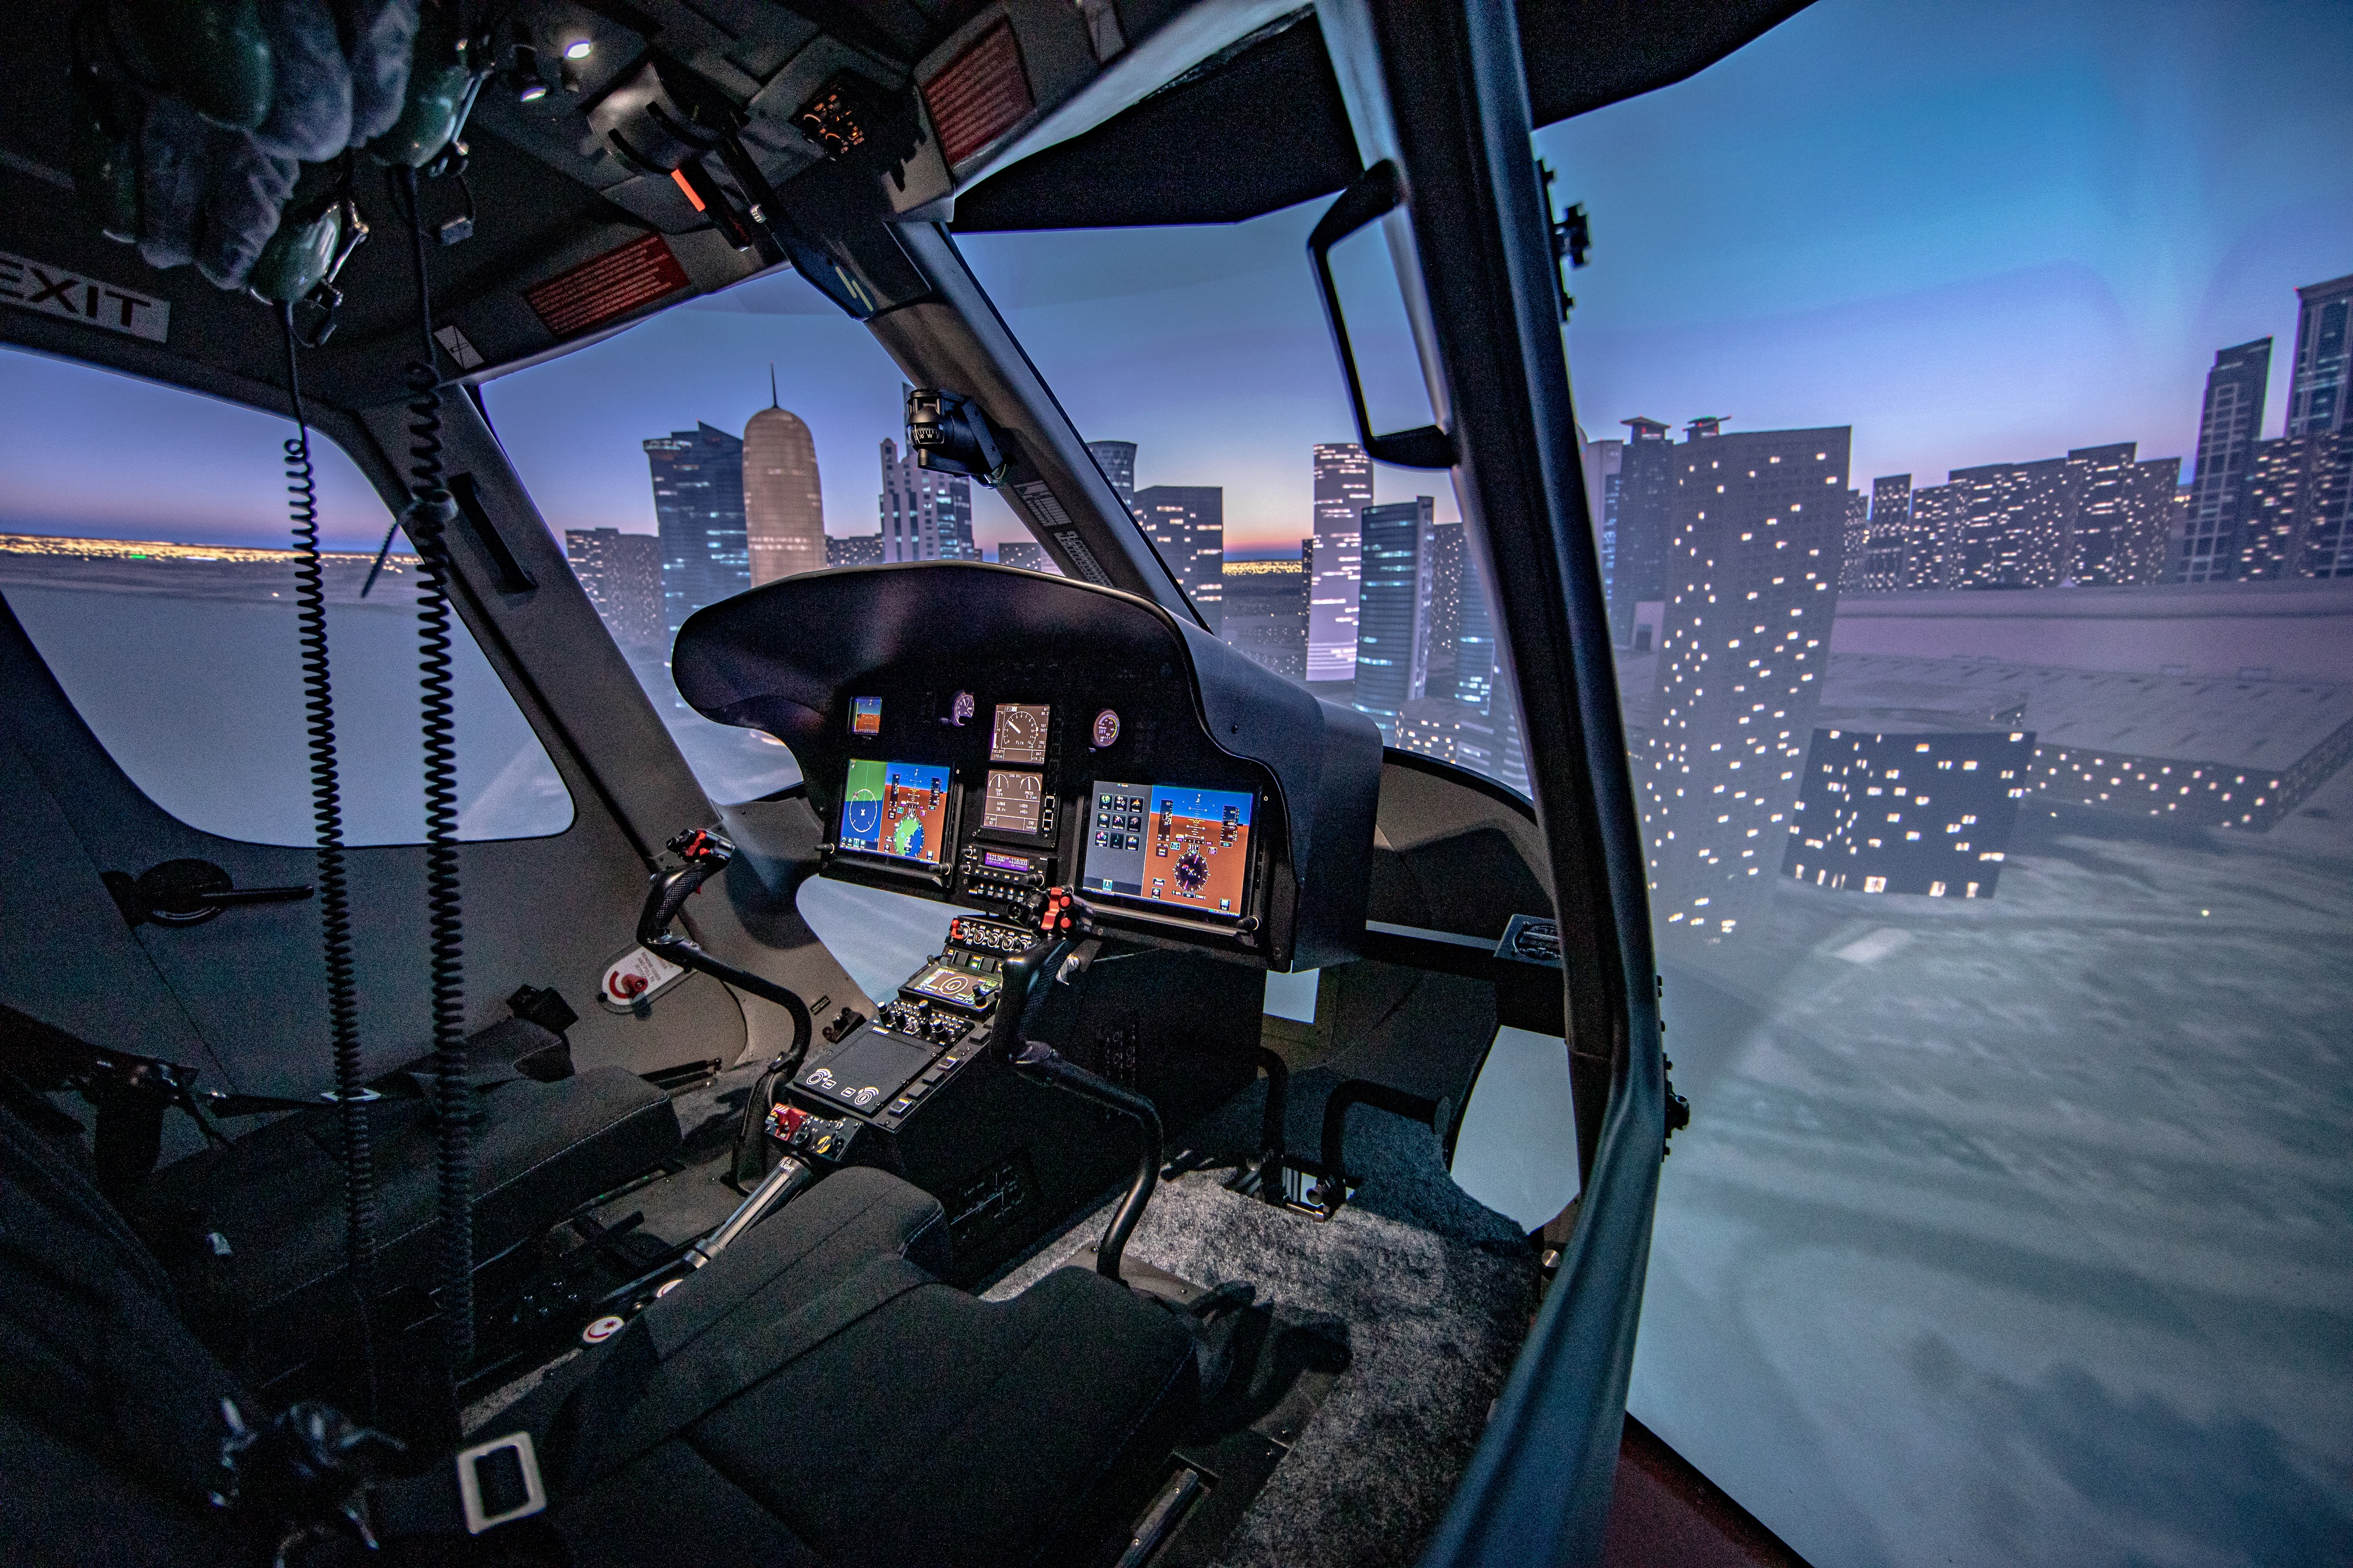 Entrol launches the H05 FNPT II simulator based on H125/AS350